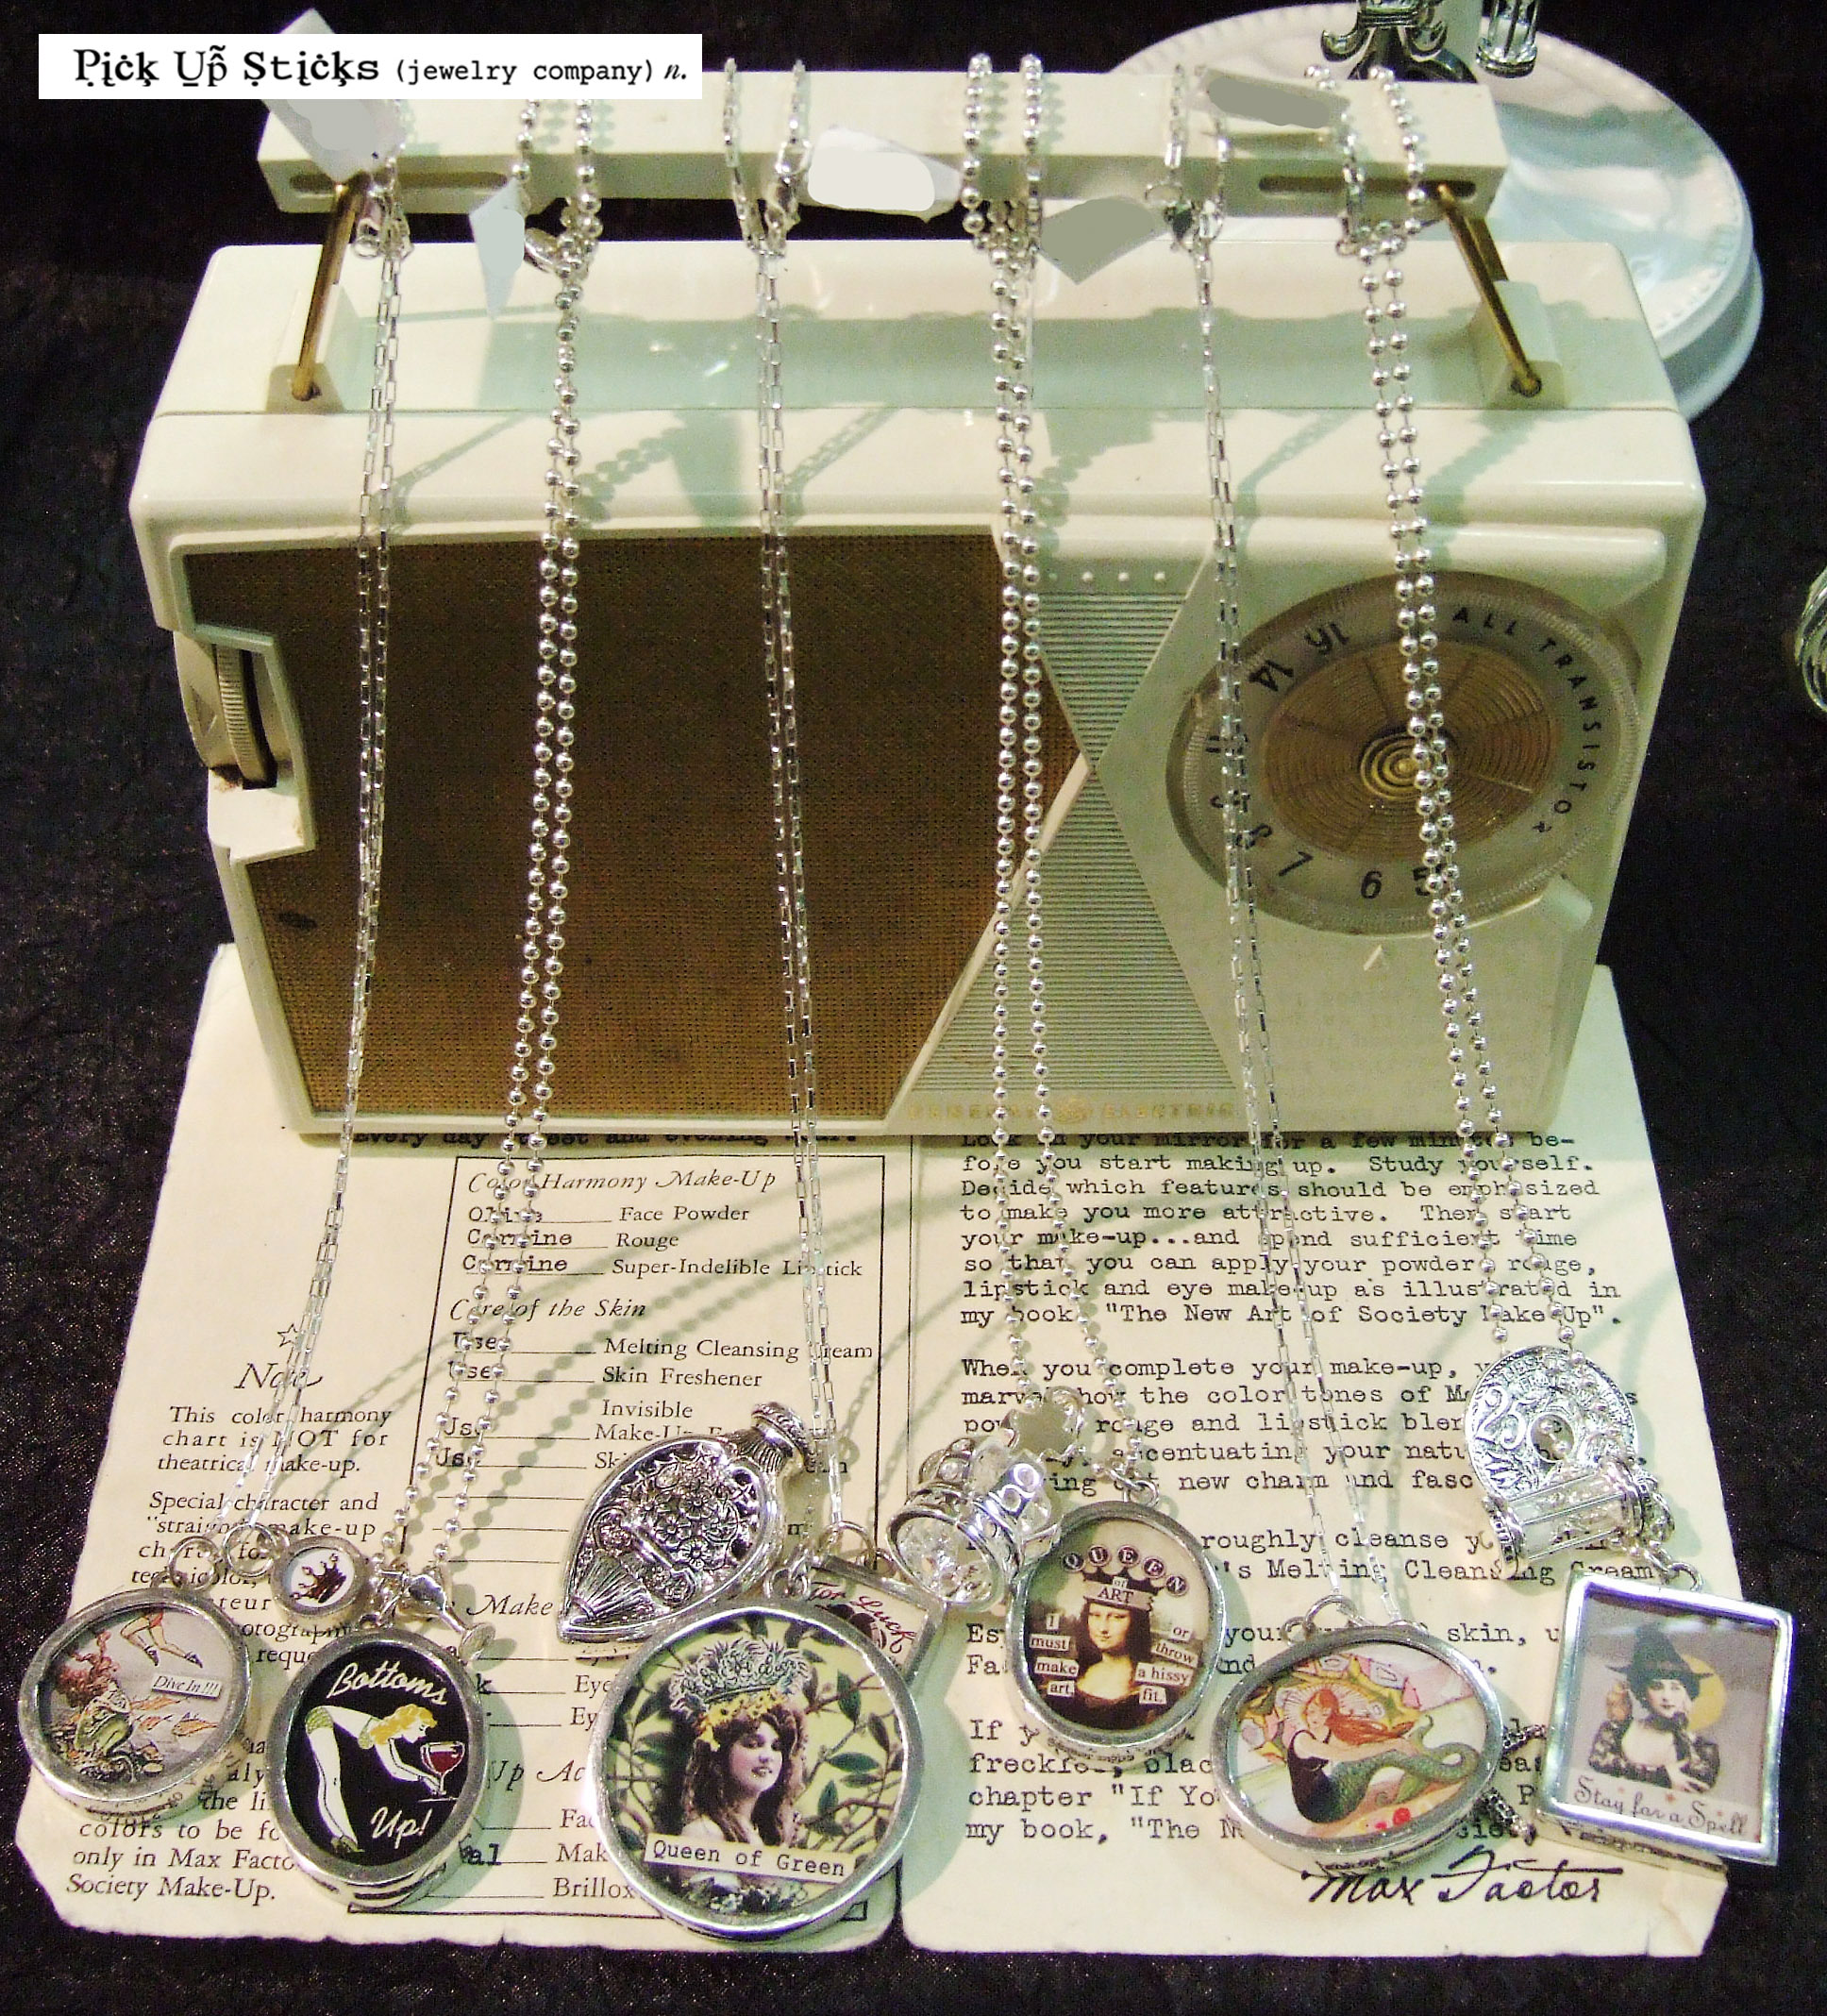 Jewelry display setting by Pick Up Sticks for a retail display contest. Ideas to display vintage retro necklaces.